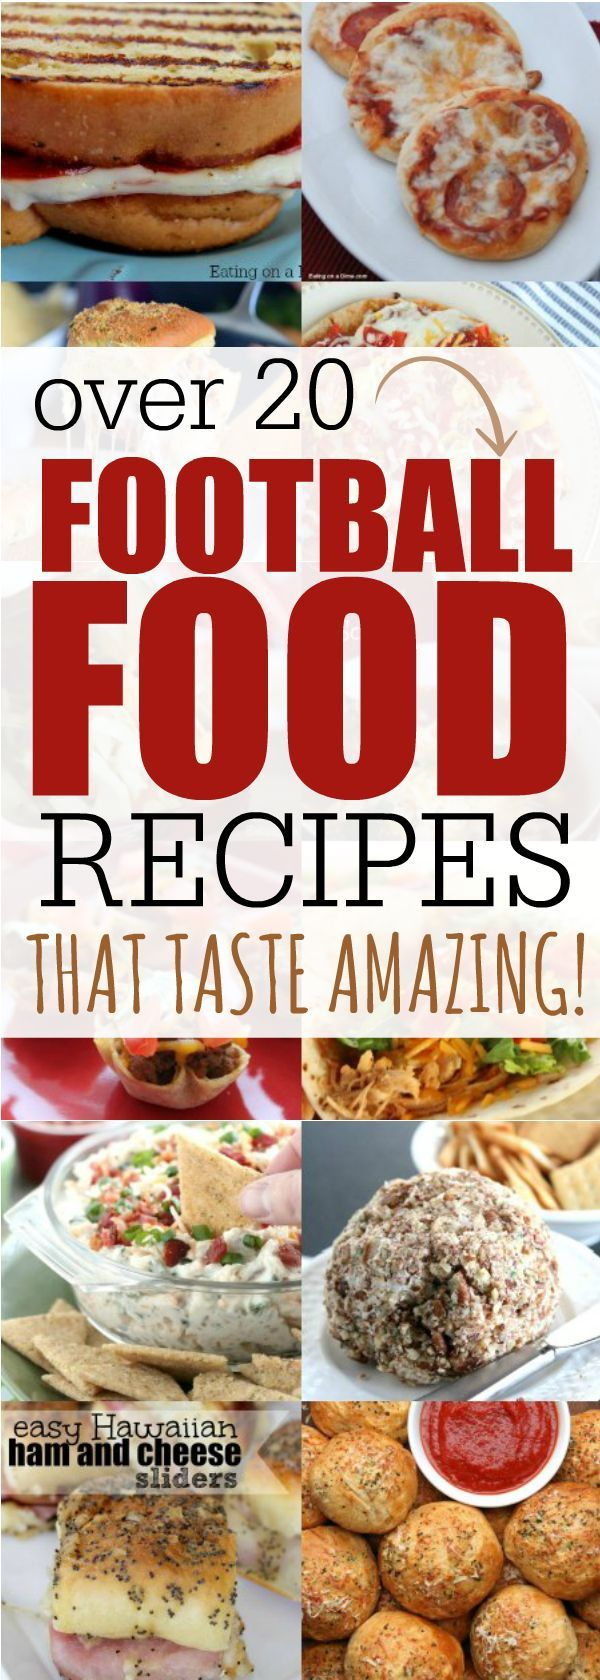 Football Food Recipes - Game Day appetizers and Game Day Meals